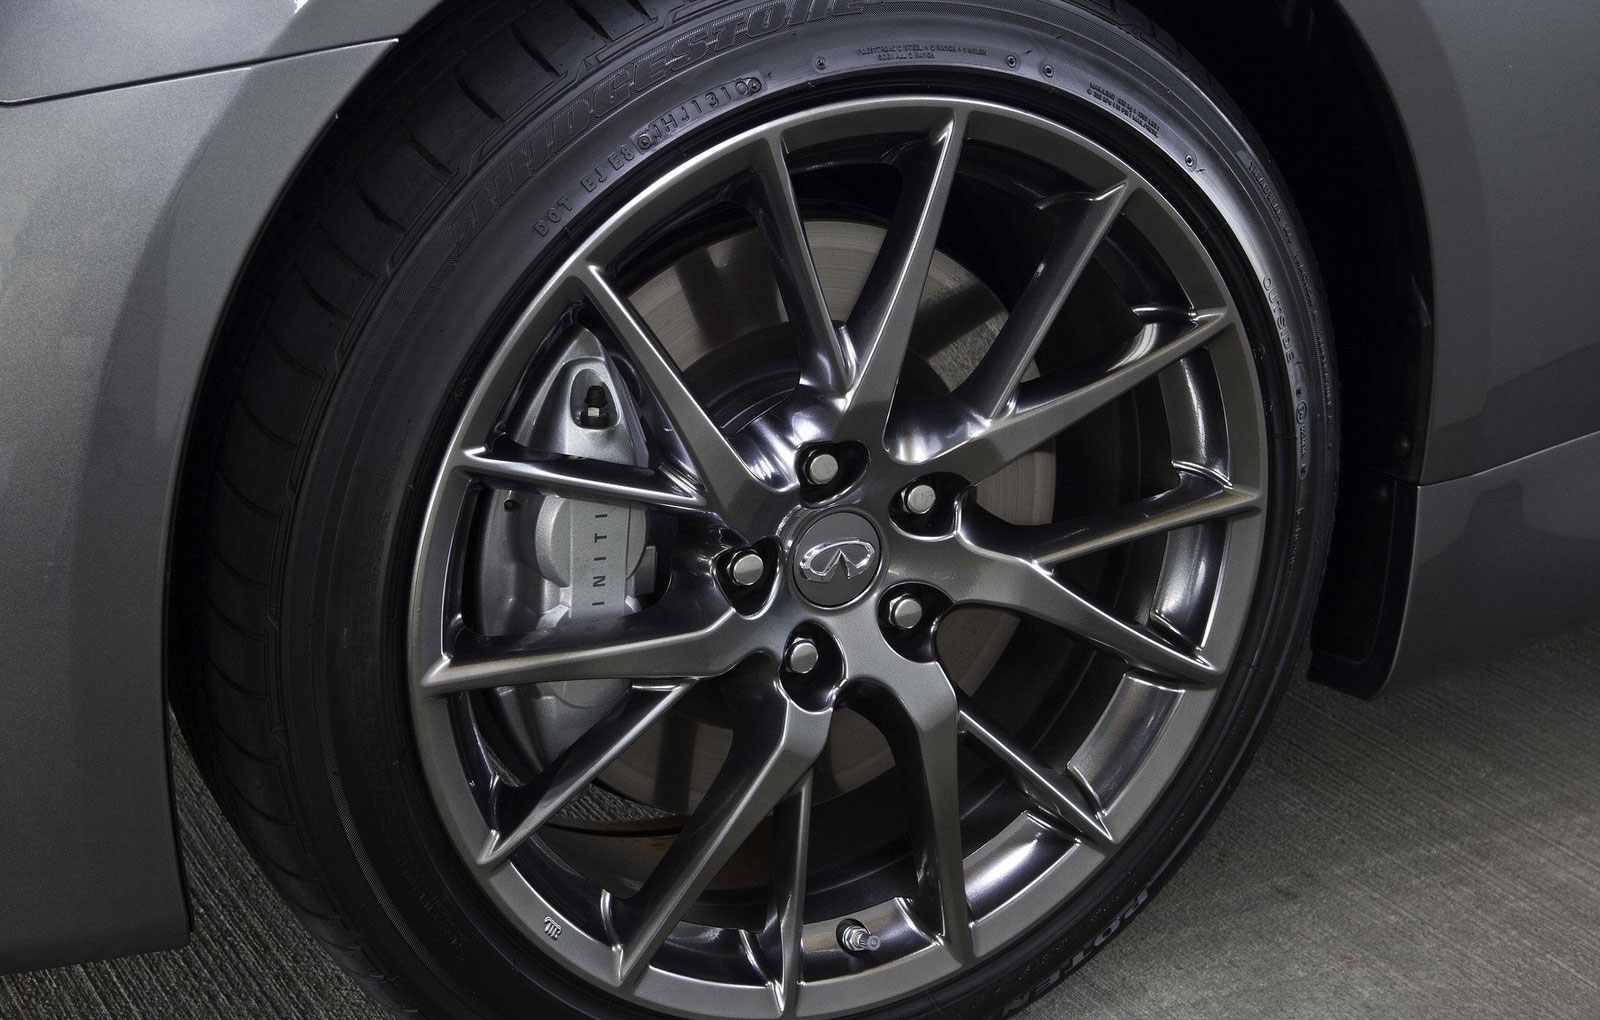 Infiniti G37 Coupe wheels #2